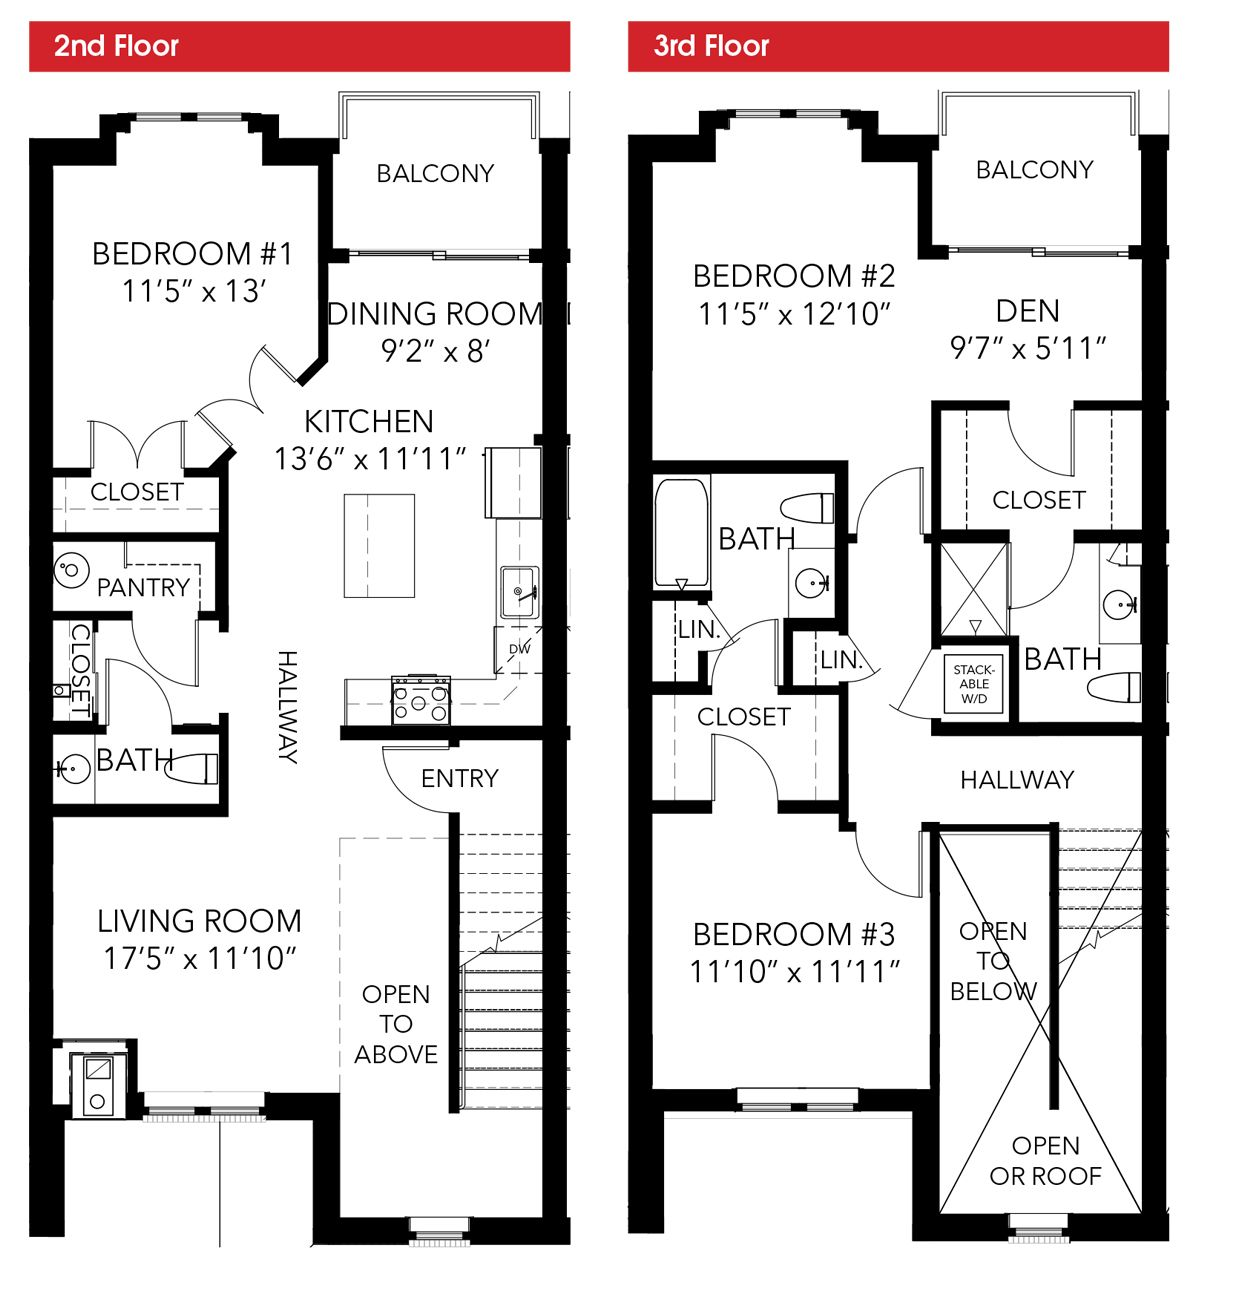 Oakbourne floor plan 3 bedroom 2 story leed certified for Contemporary townhouse plans